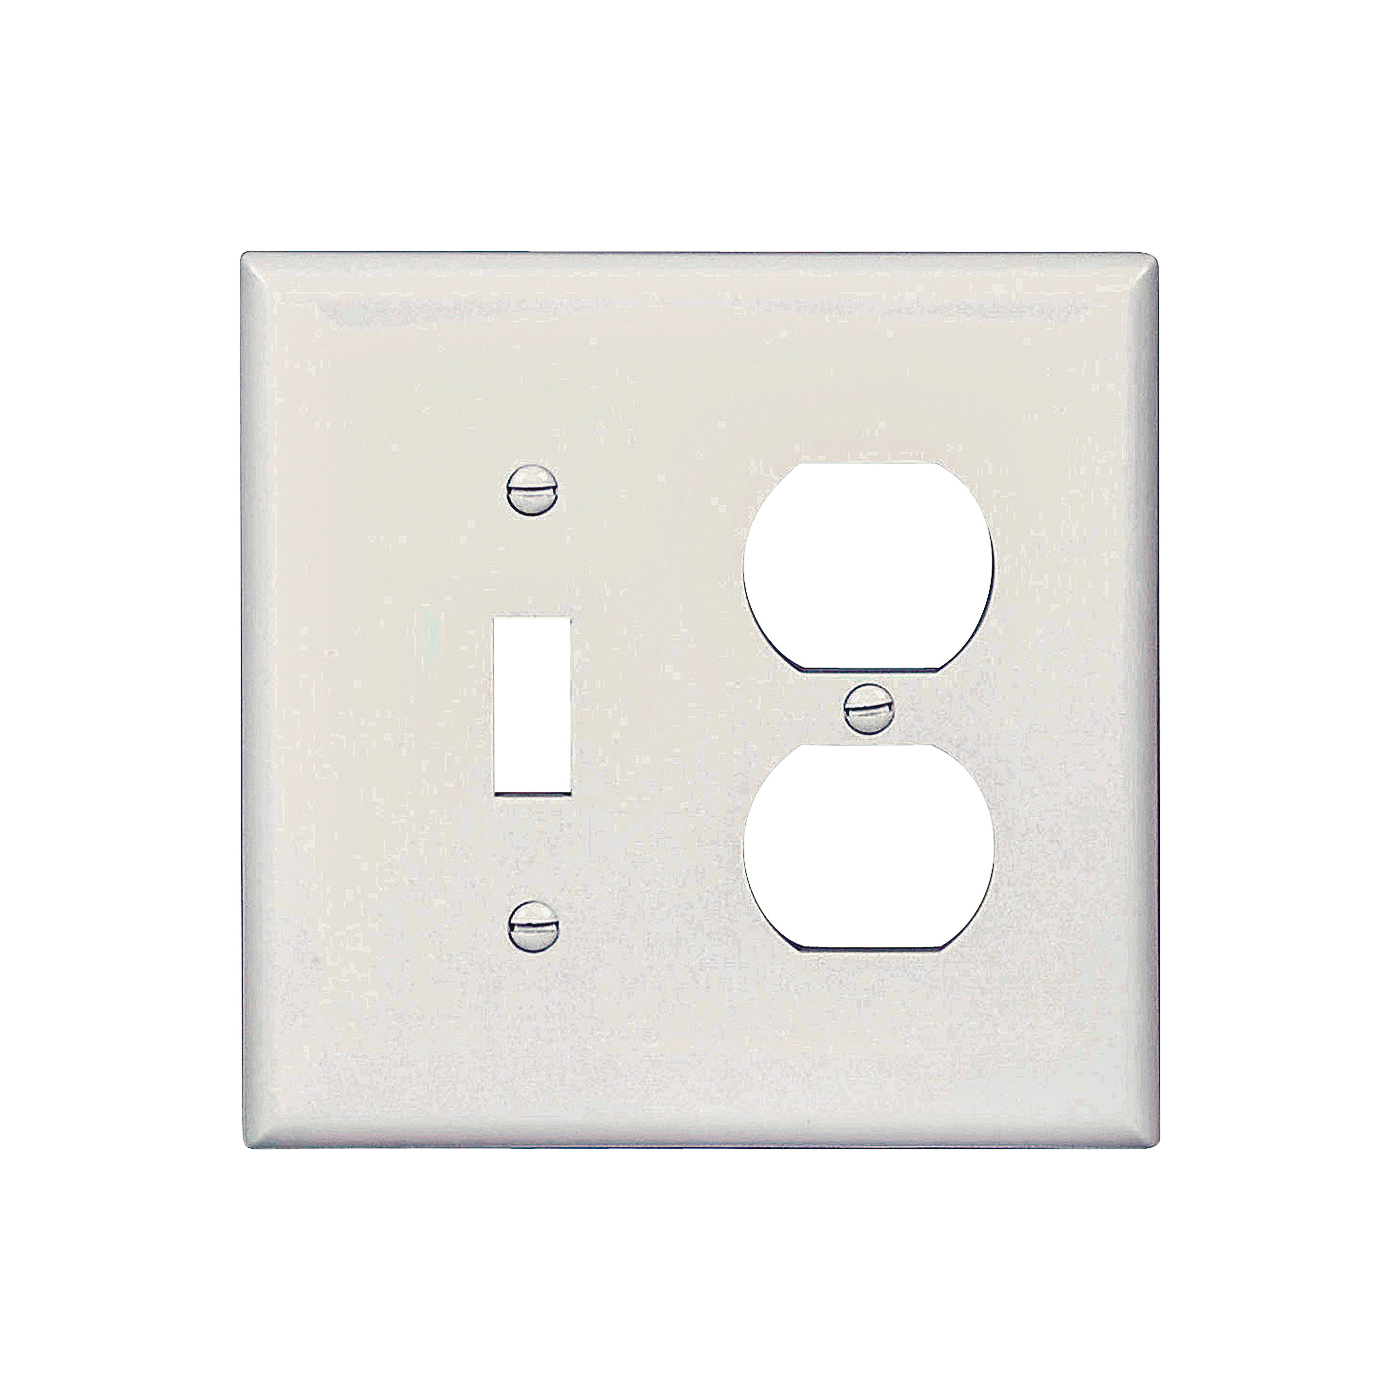 Picture of Eaton Wiring Devices PJ18W Wallplate, 4-7/8 in L, 4-15/16 in W, 2-Gang, Polycarbonate, White, High-Gloss